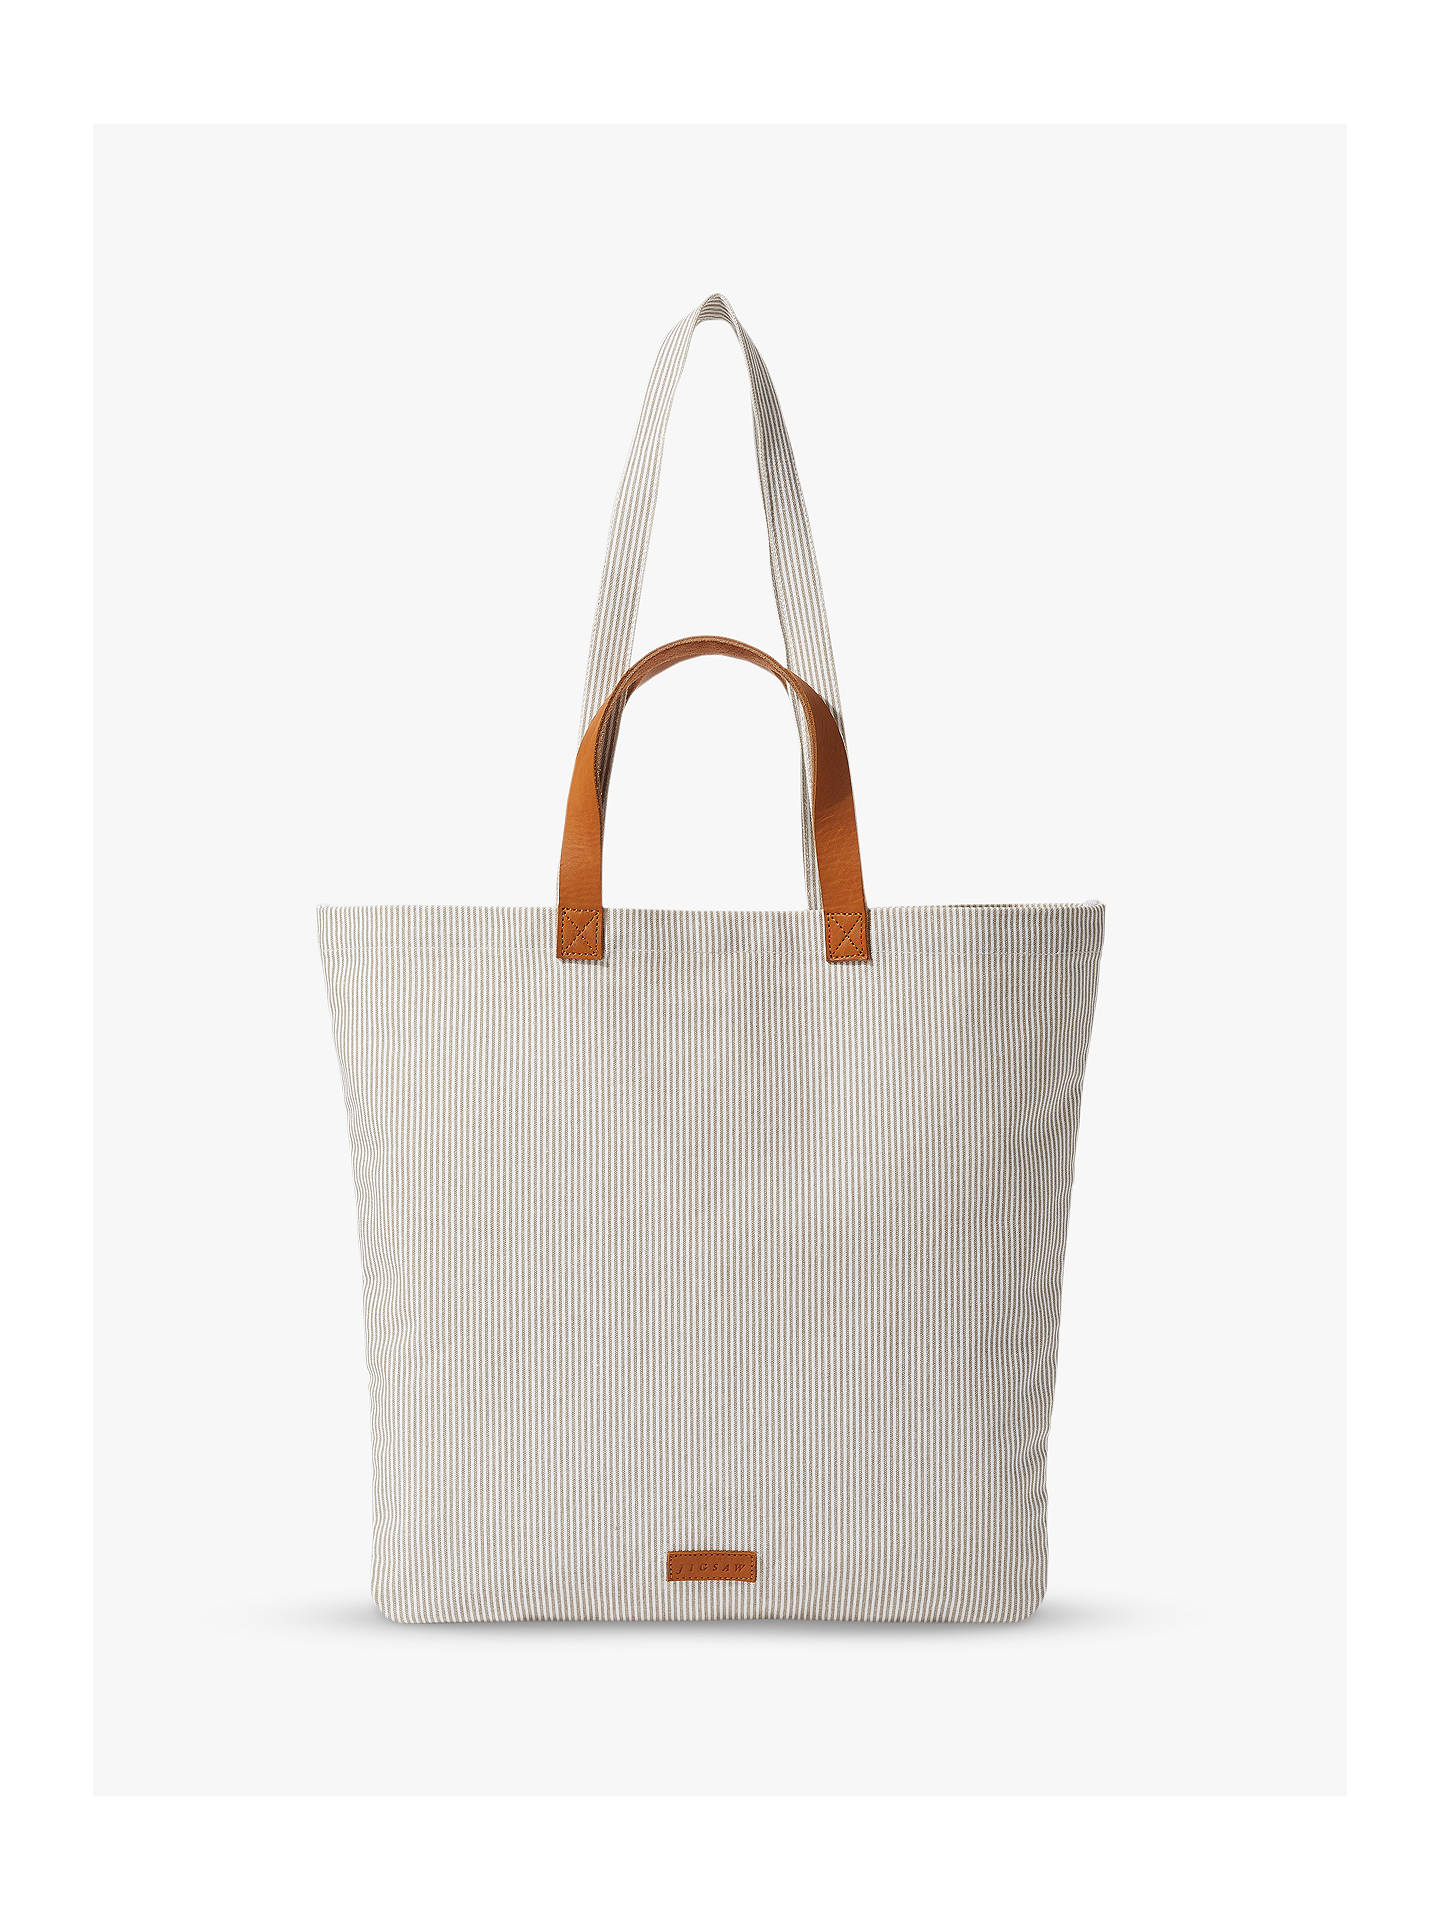 ELEMIS STRIPED BEACH// TOTE BAG ~ NEW ~ FREE P/&P